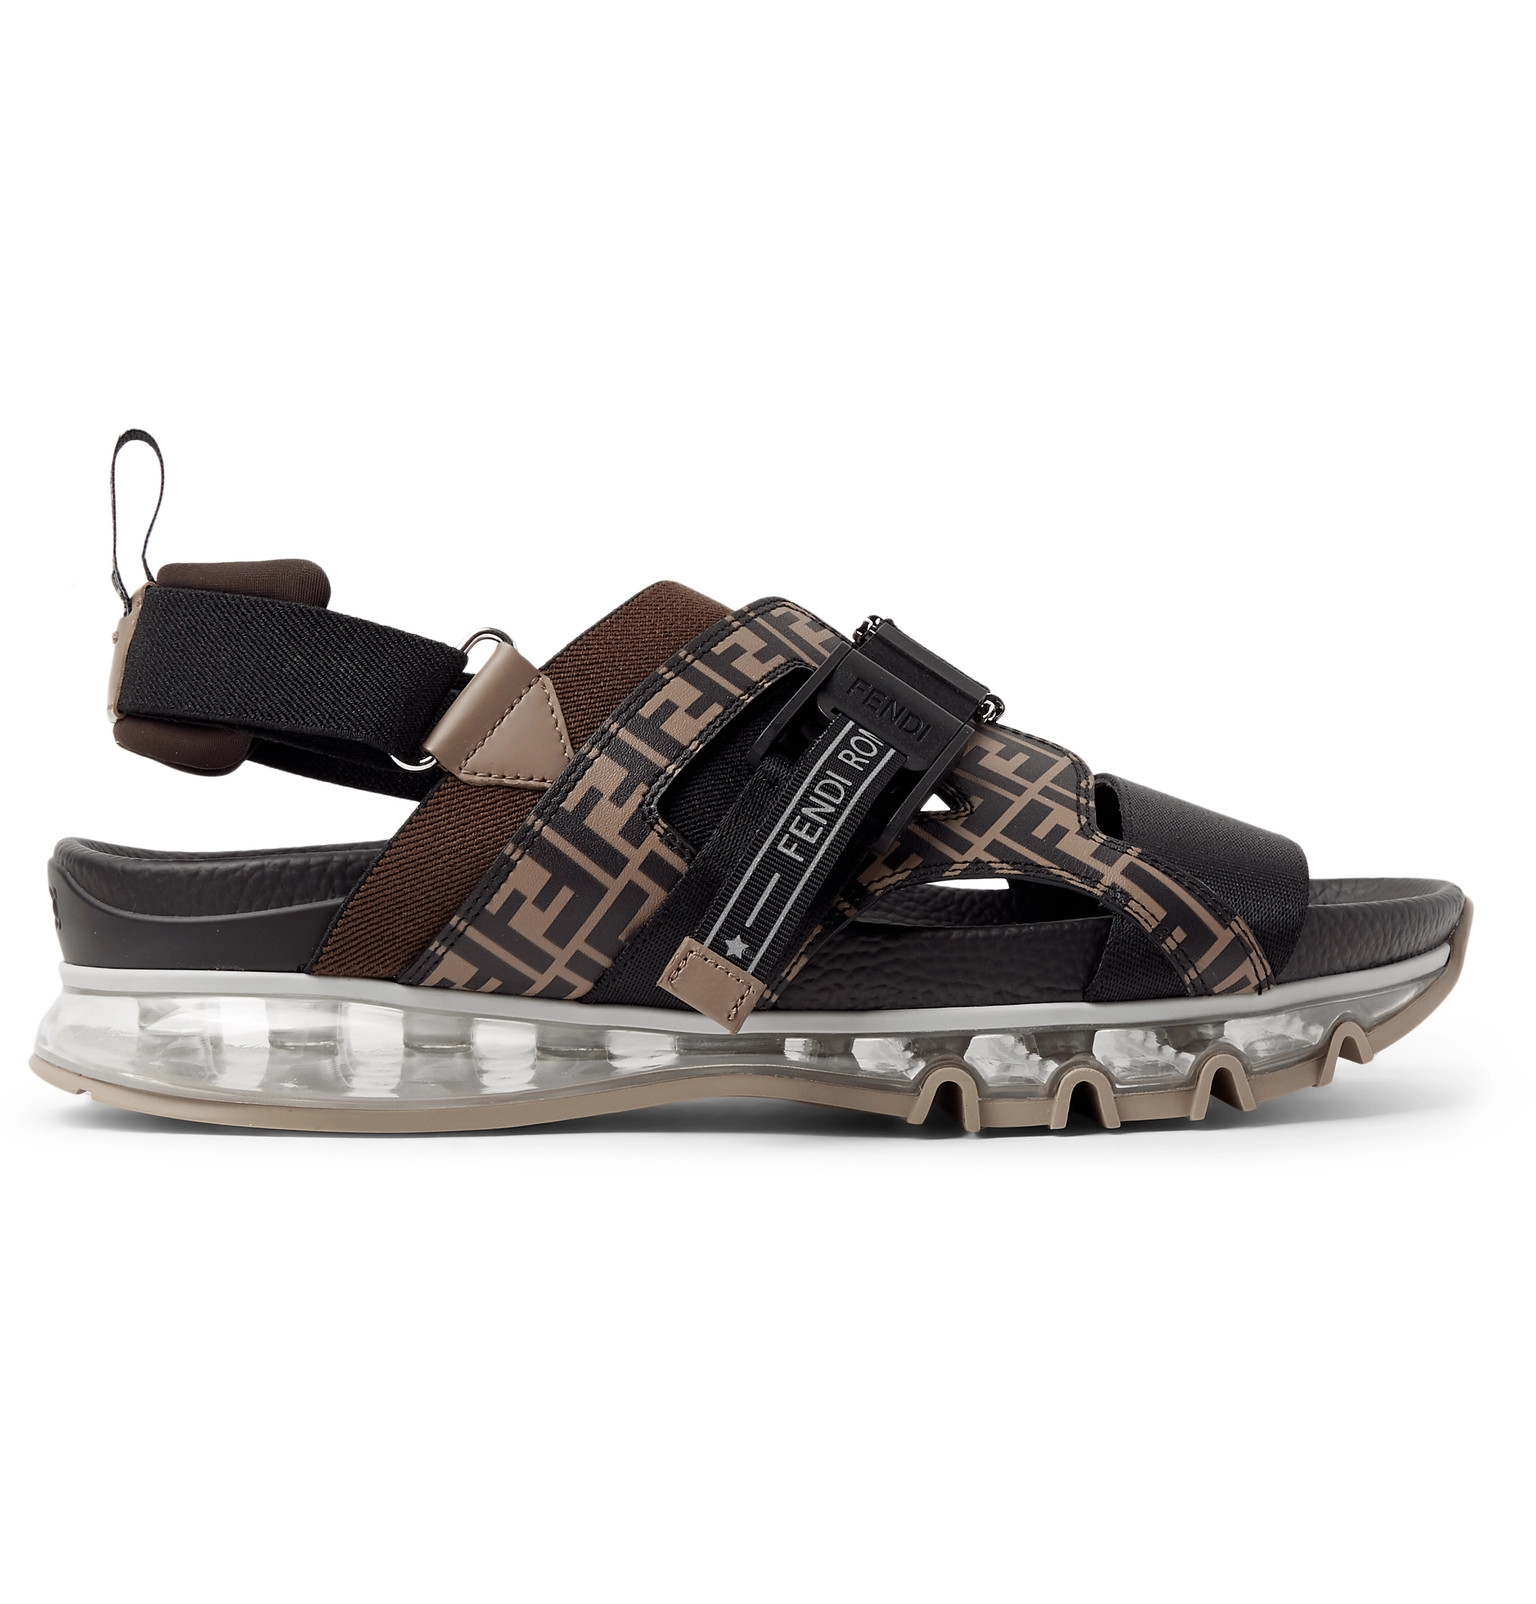 55b28a75e92d Fendi - Logo-Print Leather and Webbing Sandals